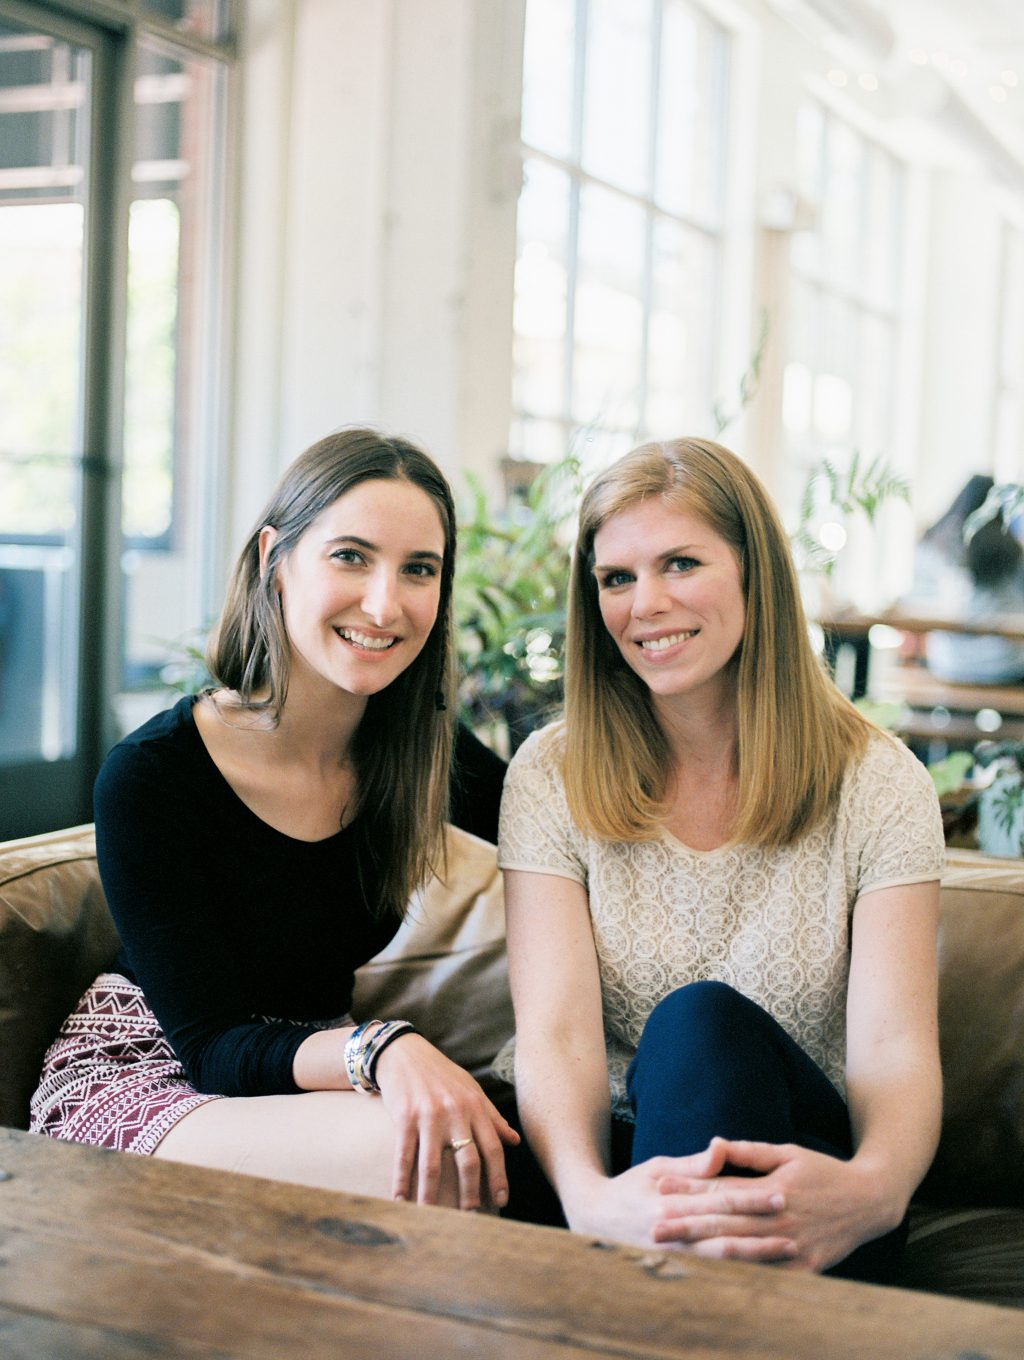 Kaleigh Gallagher + Marcie Reilly, Flutter Social Co-founders